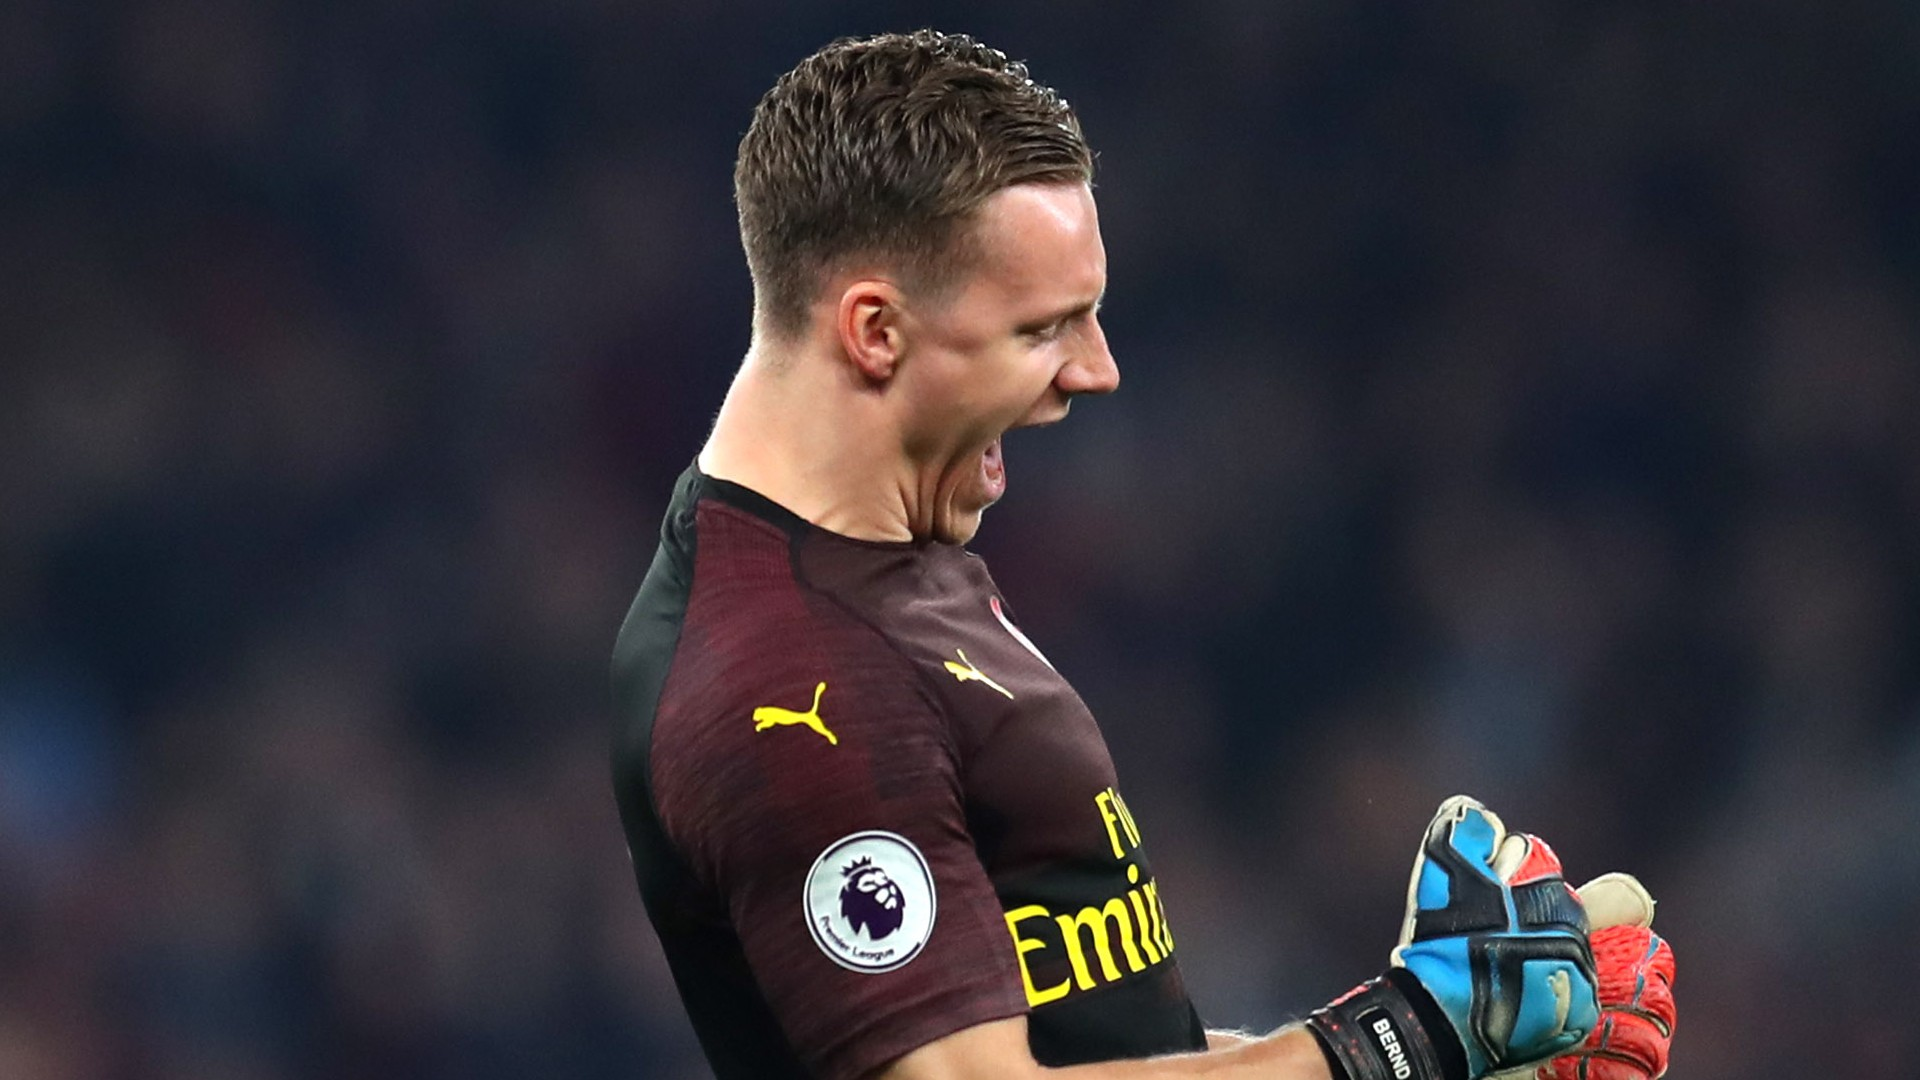 Arsenal News: How Bernd Leno Overcame Rocky Start To